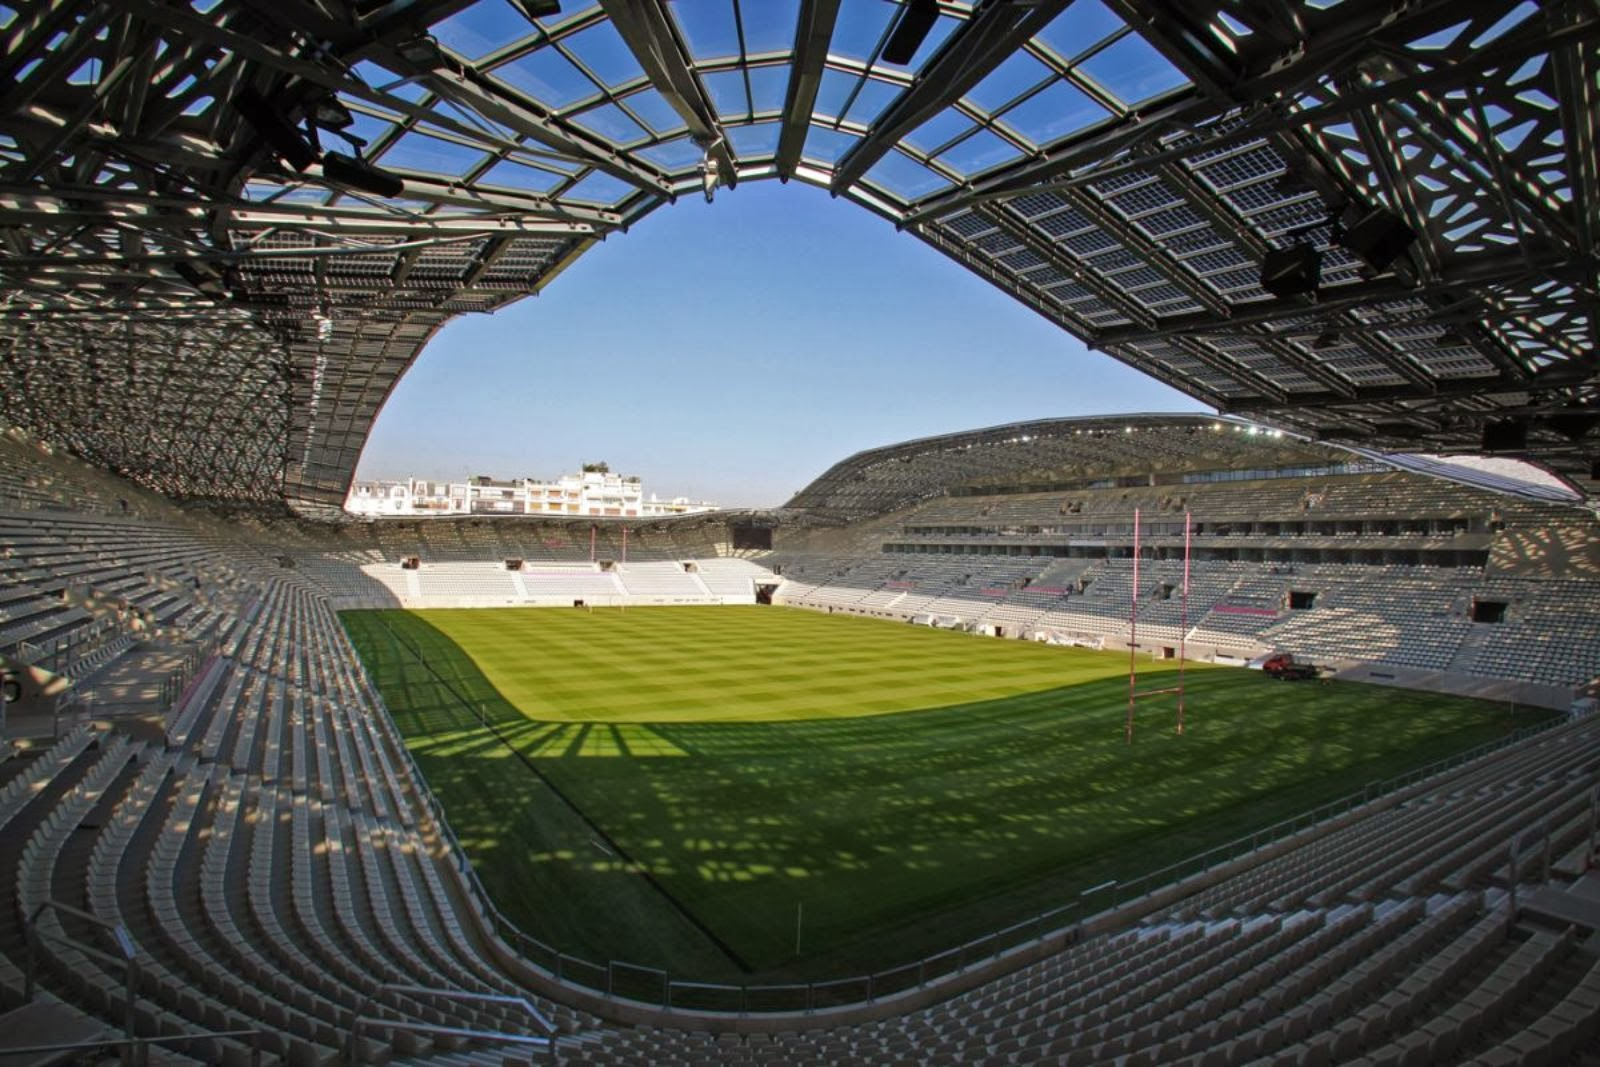 Architekt Stade Architecture Now And The Future Stade Jean Bouin By Rudy Ricciotti